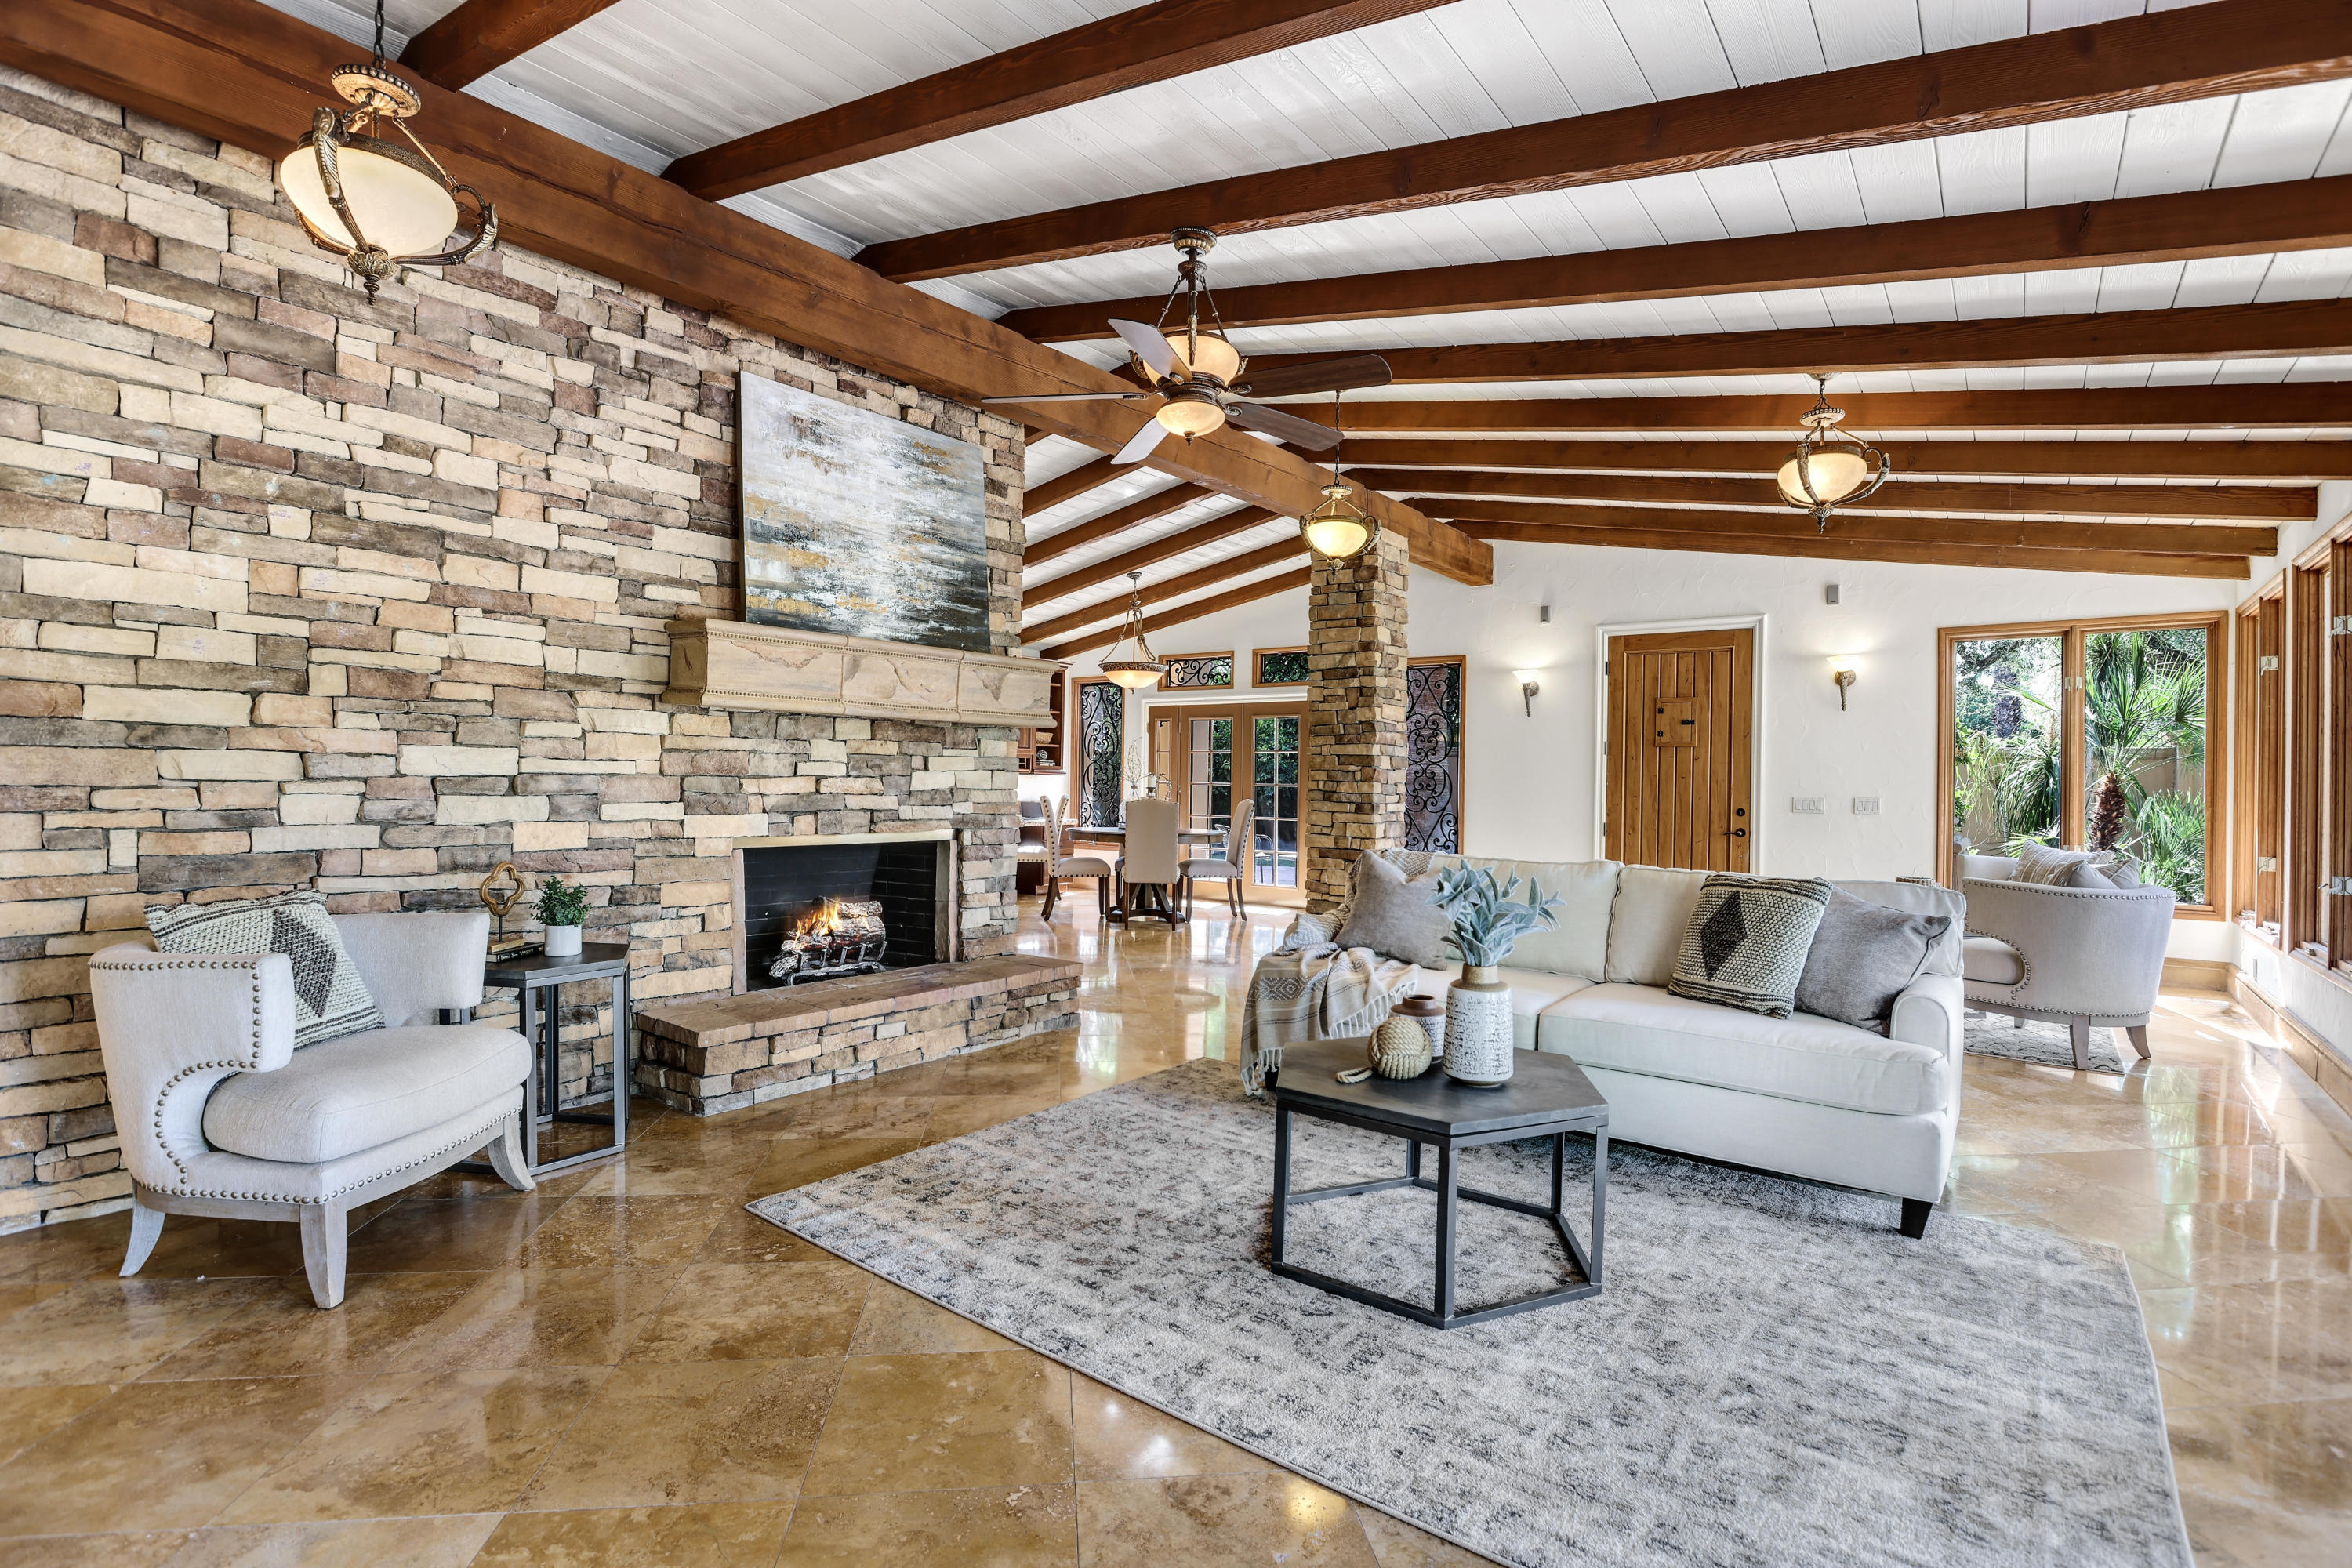 Major Price Reduction!  Rumored to have been originally built for golf legend Ben Hogan, this home was remodeled and expanded in 2006.  Now a true compound for friends and family to gather.  Perched on a north facing, more than half-acre lot with ''forever'' fairway views of prestigious Tamarisk Country Club golf course this home exudes quiet luxury and total privacy.  The main house boasts an open gourmet kitchen, formal dining room, formal living room, breakfast area, wine room and separate wet bar.  Attached casita has separate kitchen, living room, 2 additional bedrooms, lounge, and private courtyard with outdoor fireplace.   Outdoor entertaining area has a separate cabana, bathroom and outdoor BBQ, freeform pool and spa.  The possibilities are endless - think family compound, separate in-law suite, separate rental unit because the possibilities are endless.  No homeowner's association and no dues.  Can be your primary dream residence or second home in prestigious Rancho Mirage.  Exceptional offering.